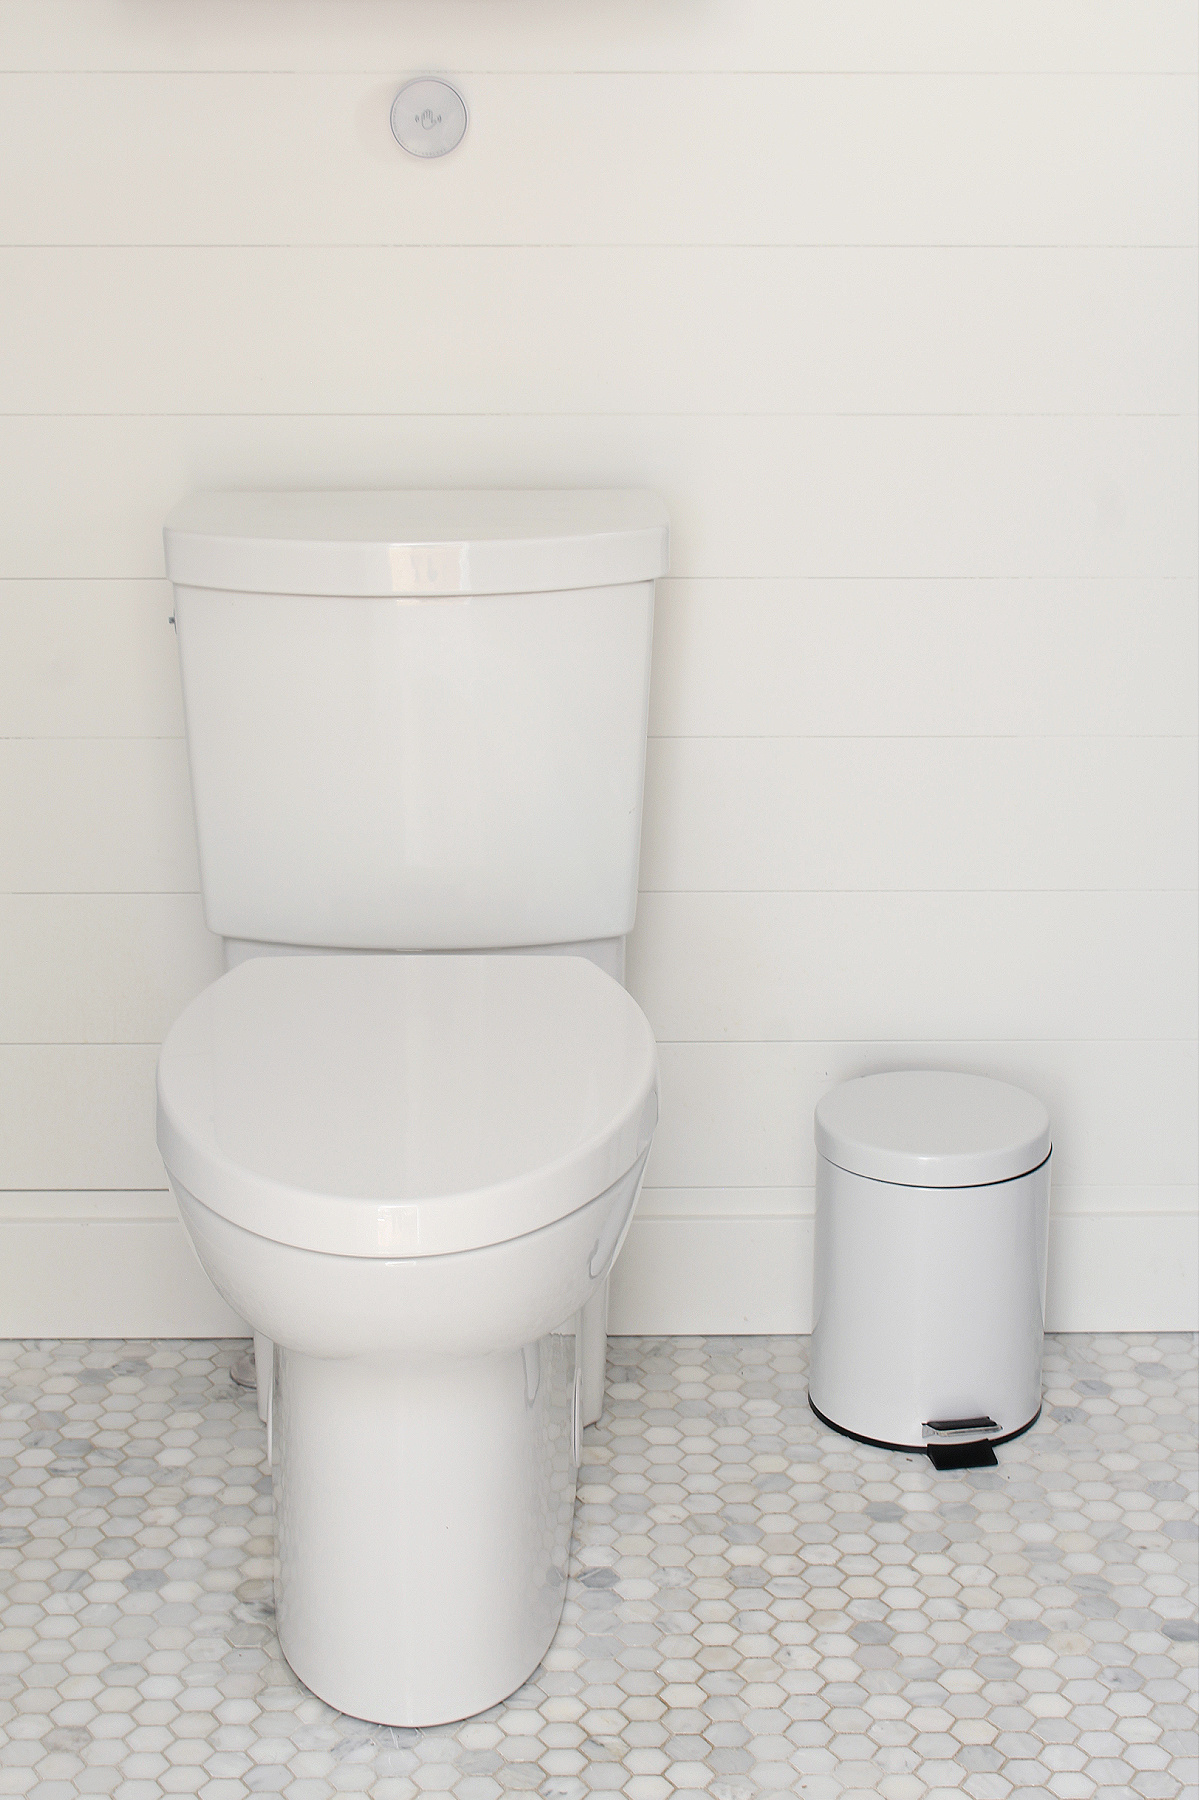 American Standard Studio toilet with touchless flush technology.